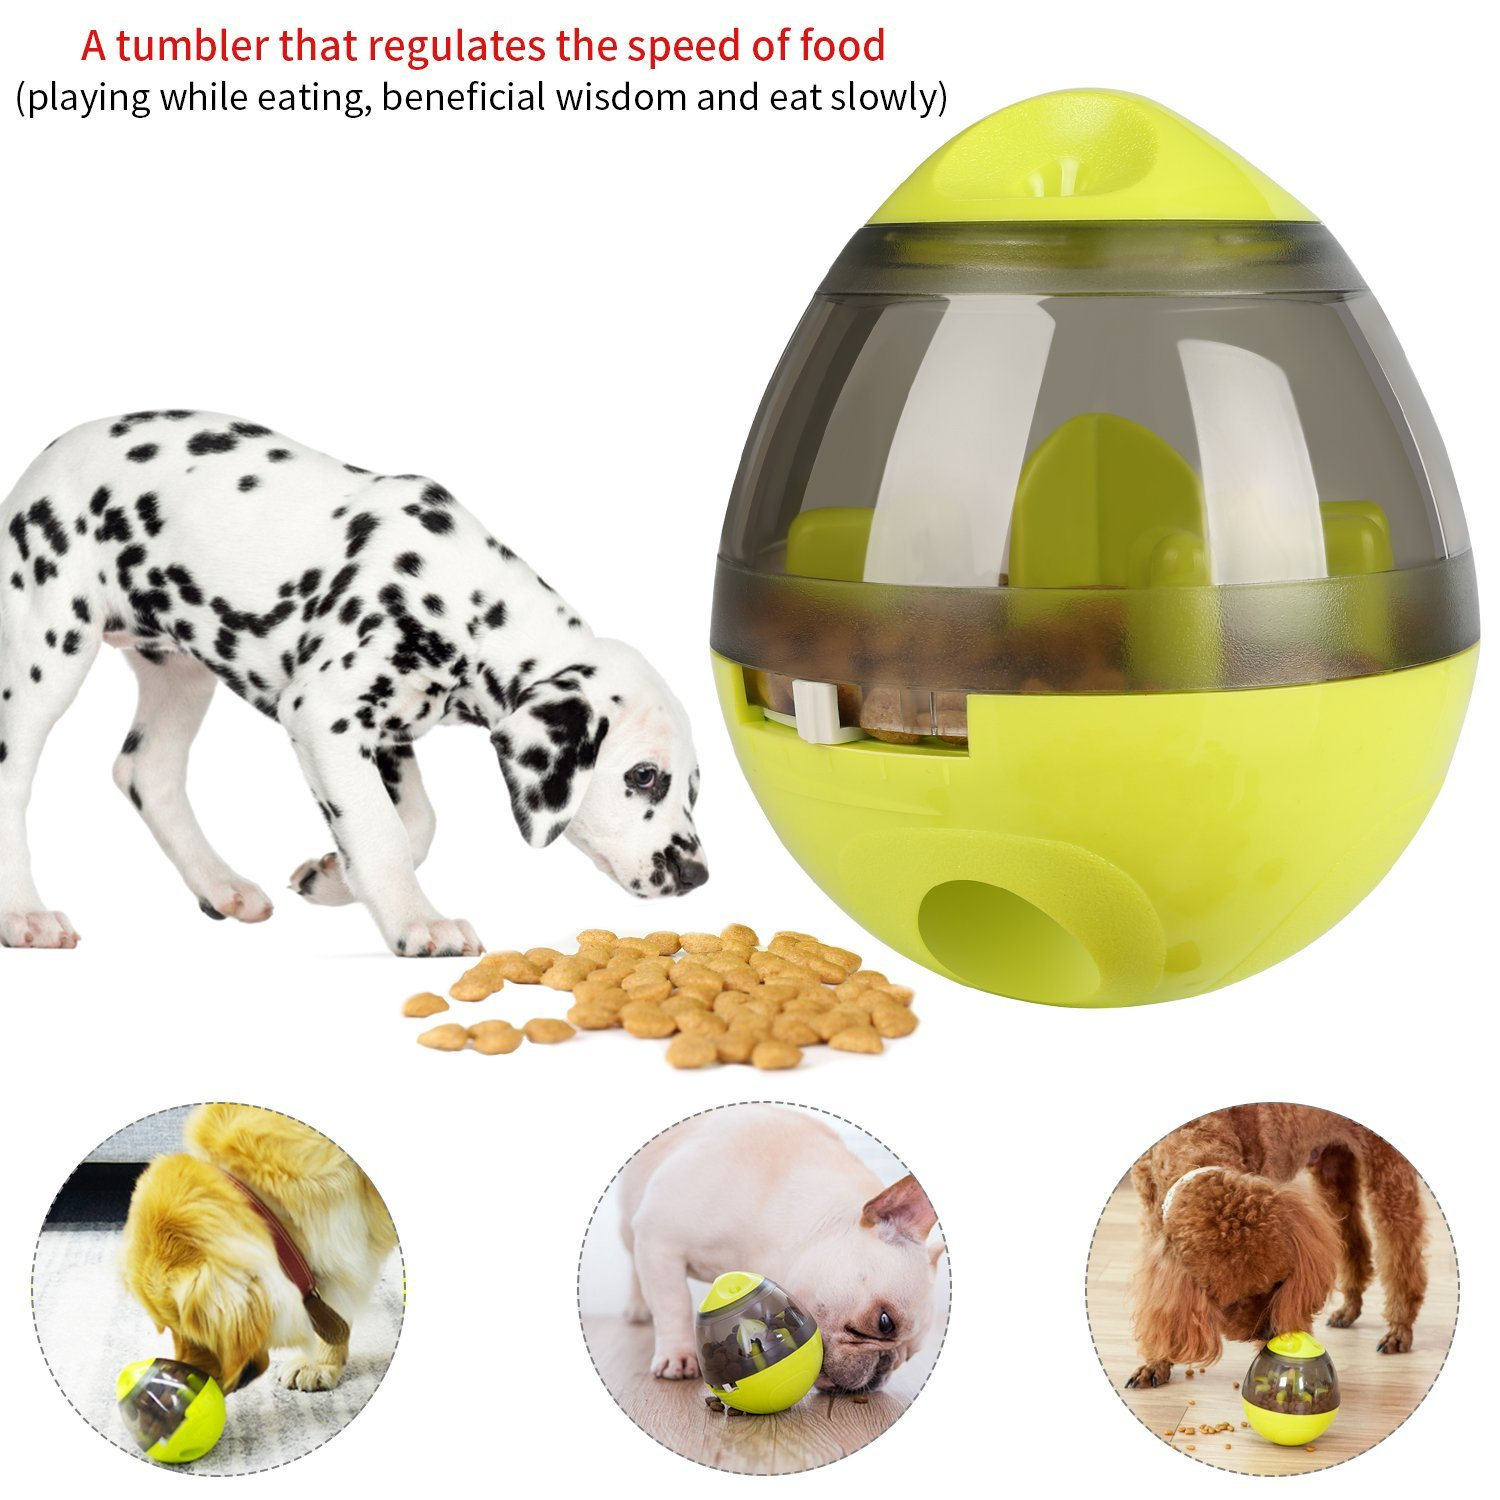 KAOSITONG Interactive Dog Toy,Interactive Food Dispensing Ball Dogs Cat Increases IQ & Mental Stimulation,Slows Down Eating,Promoting Active Healthy Feeding Small Medium Large Dogs,Easy to Clean by KAOSITONG (Image #6)